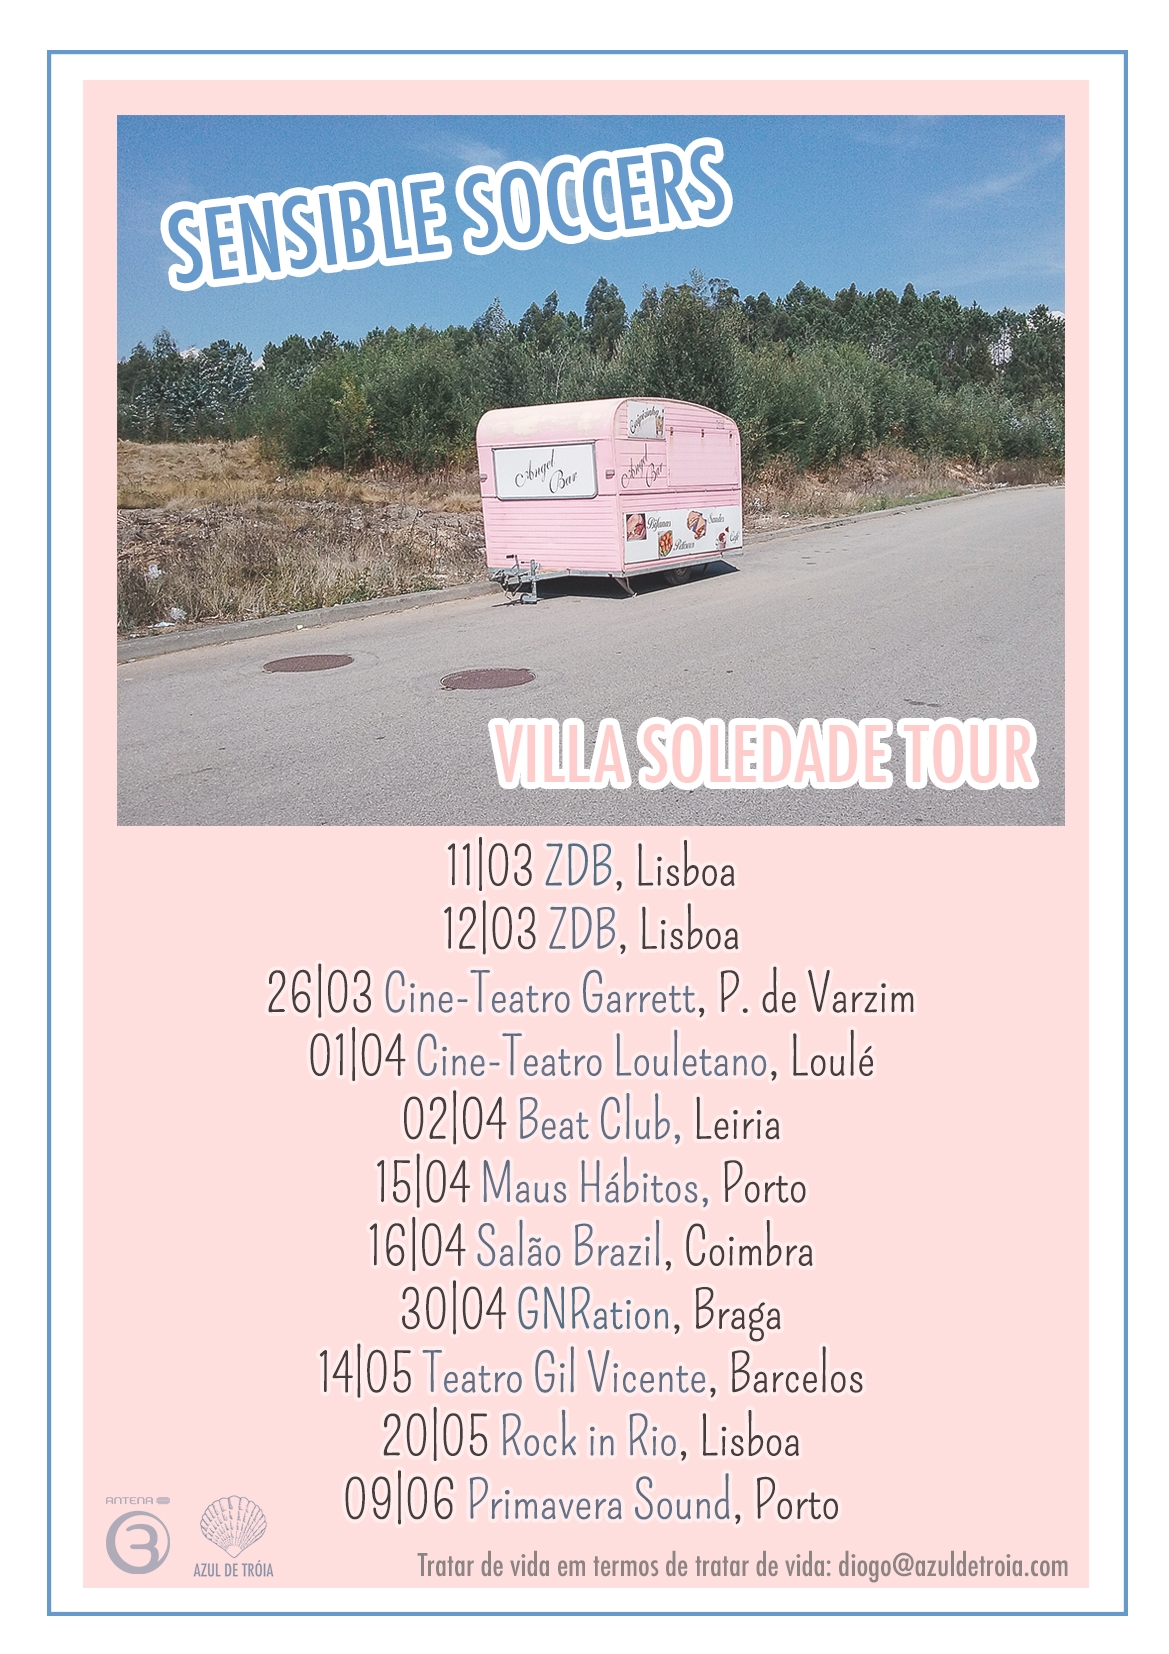 Sensible Soccers - Tour Villa Soledade (first leg)